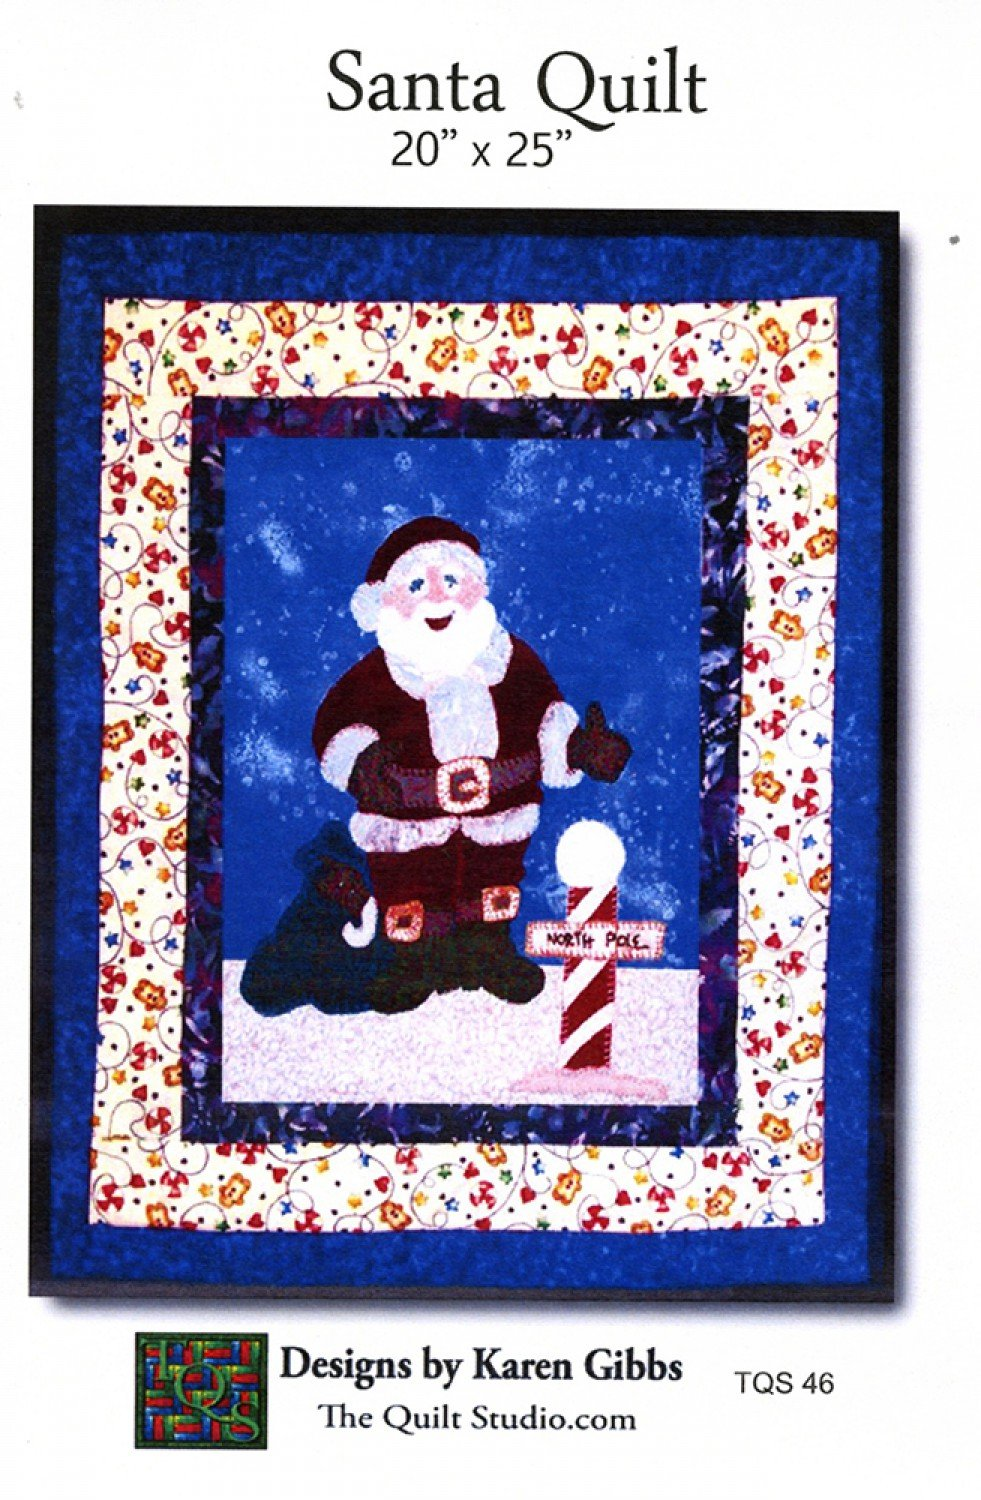 Santa Quilt by The Quilt Studio